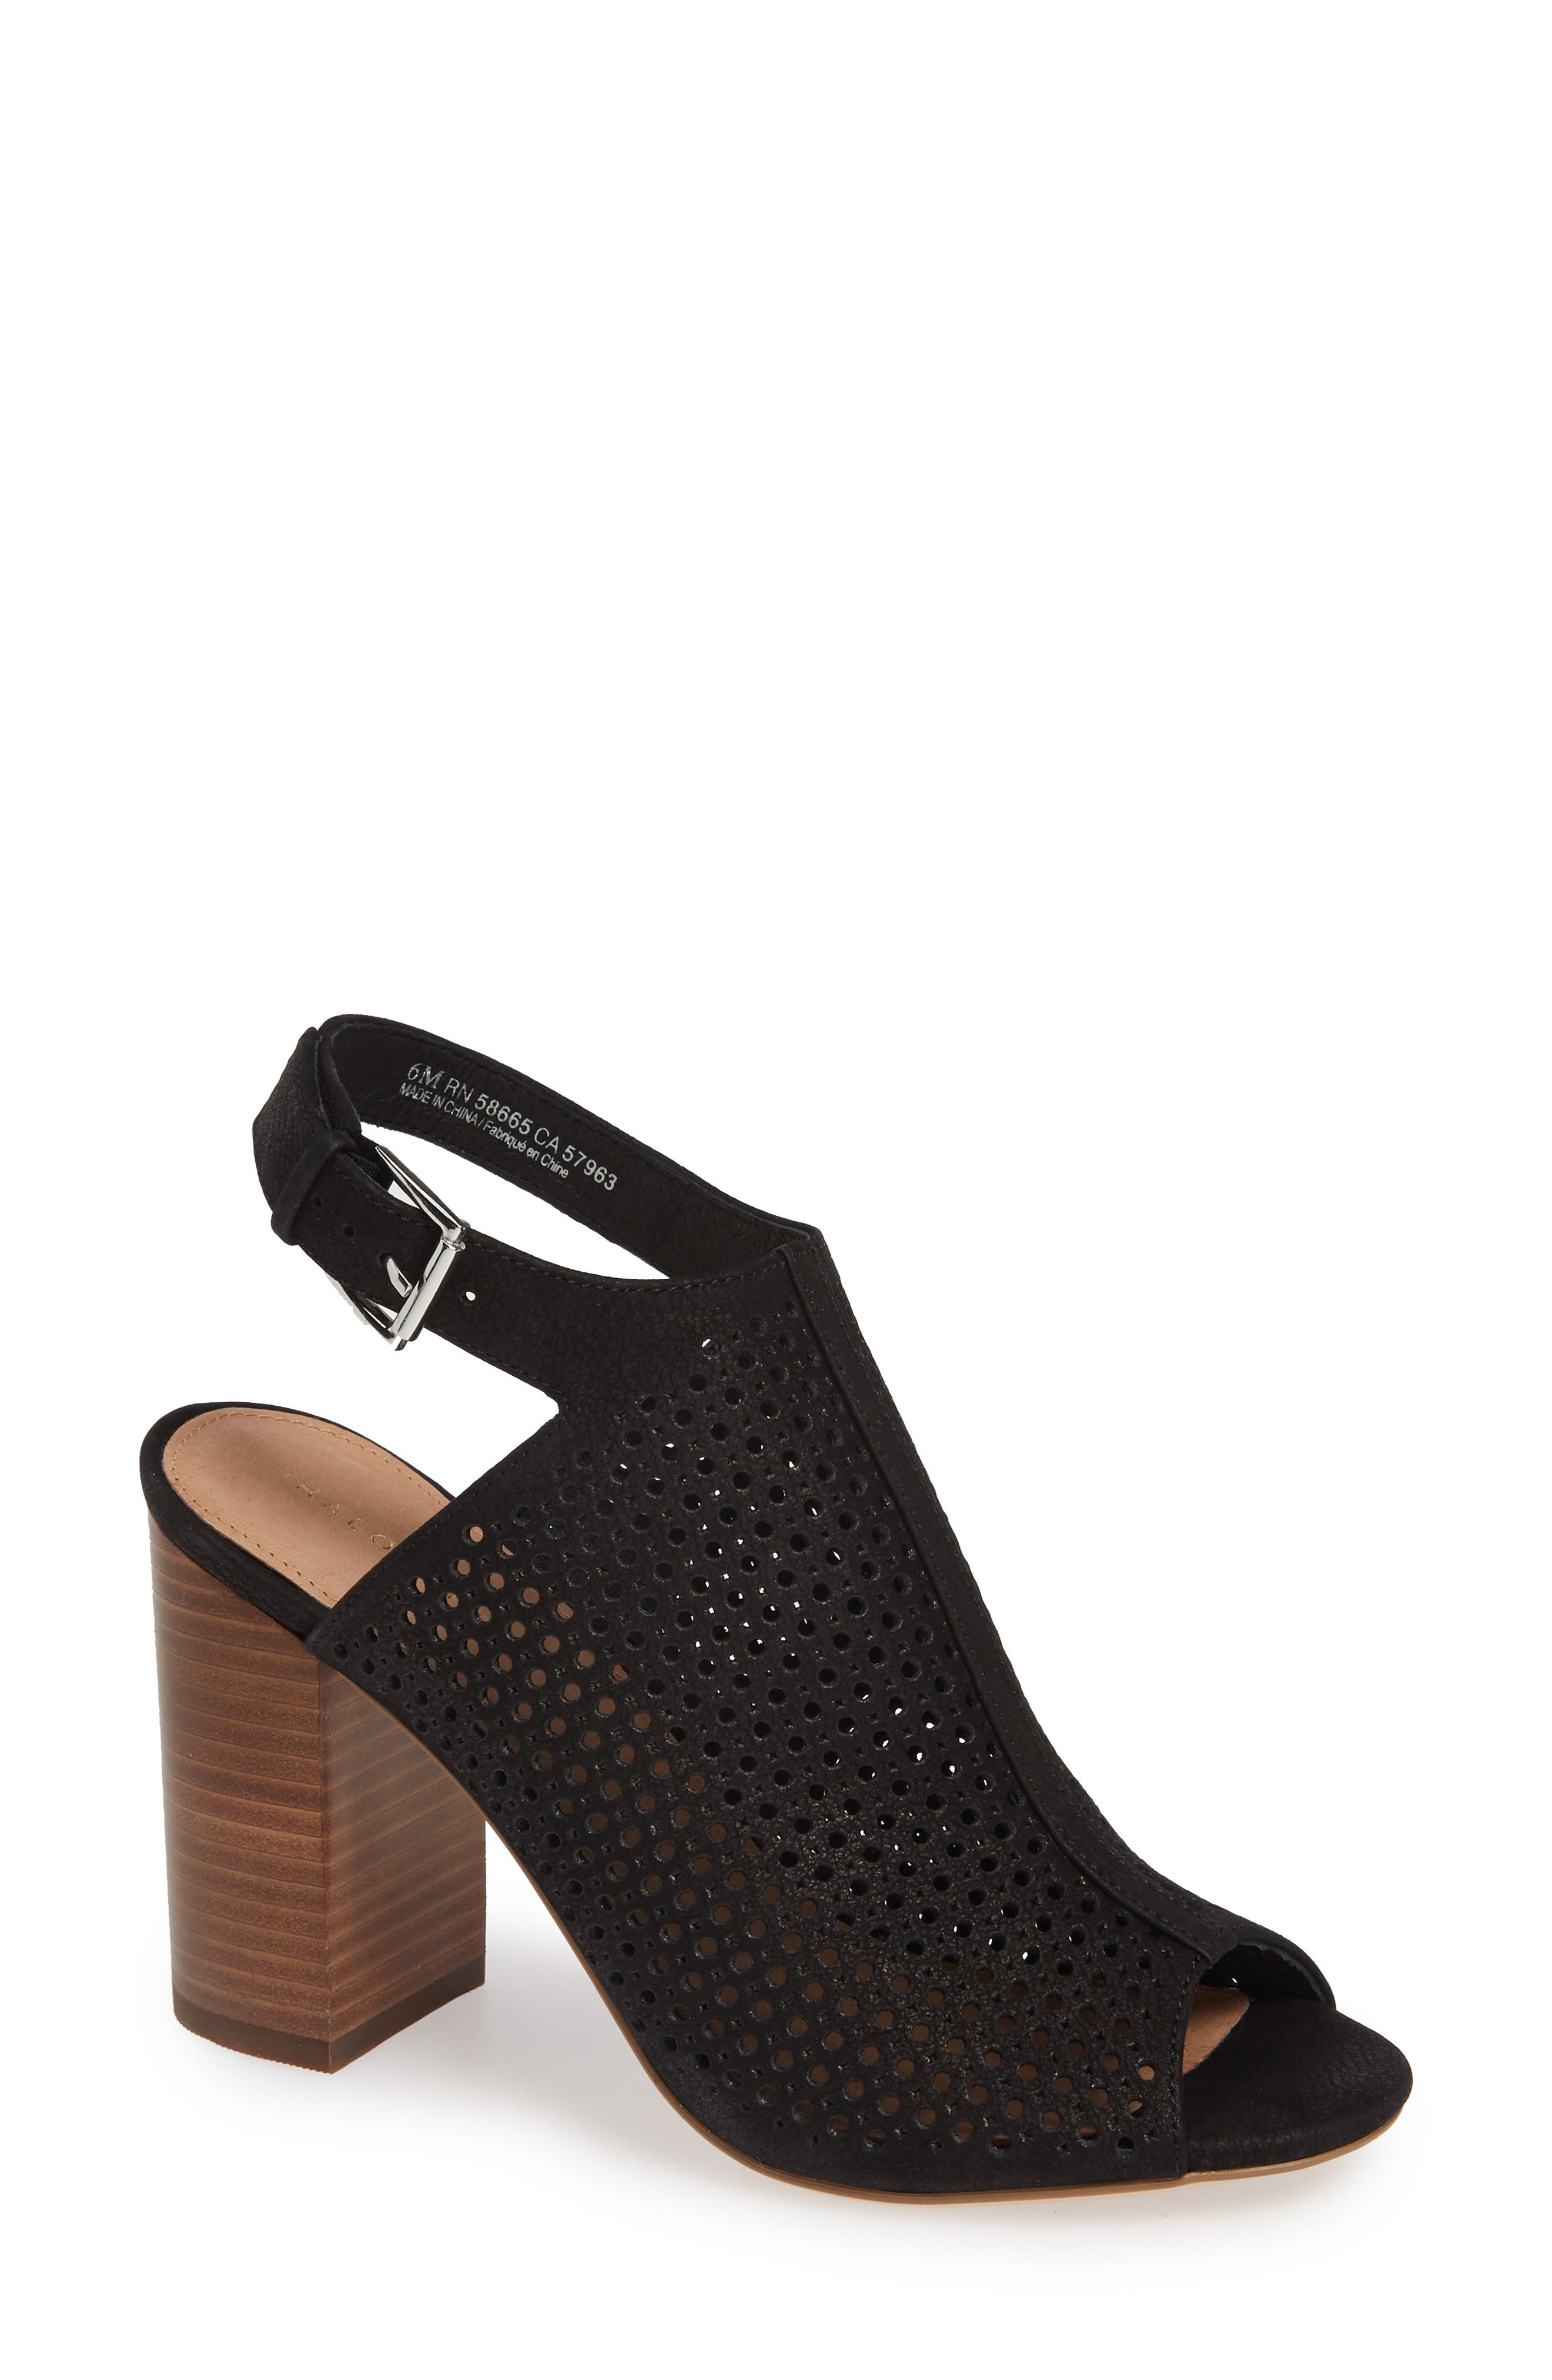 HALOGEN<SUP>®</SUP>, Demi Perforated Shield Sandal, Main thumbnail 1, color, BLACK OILED NUBUCK